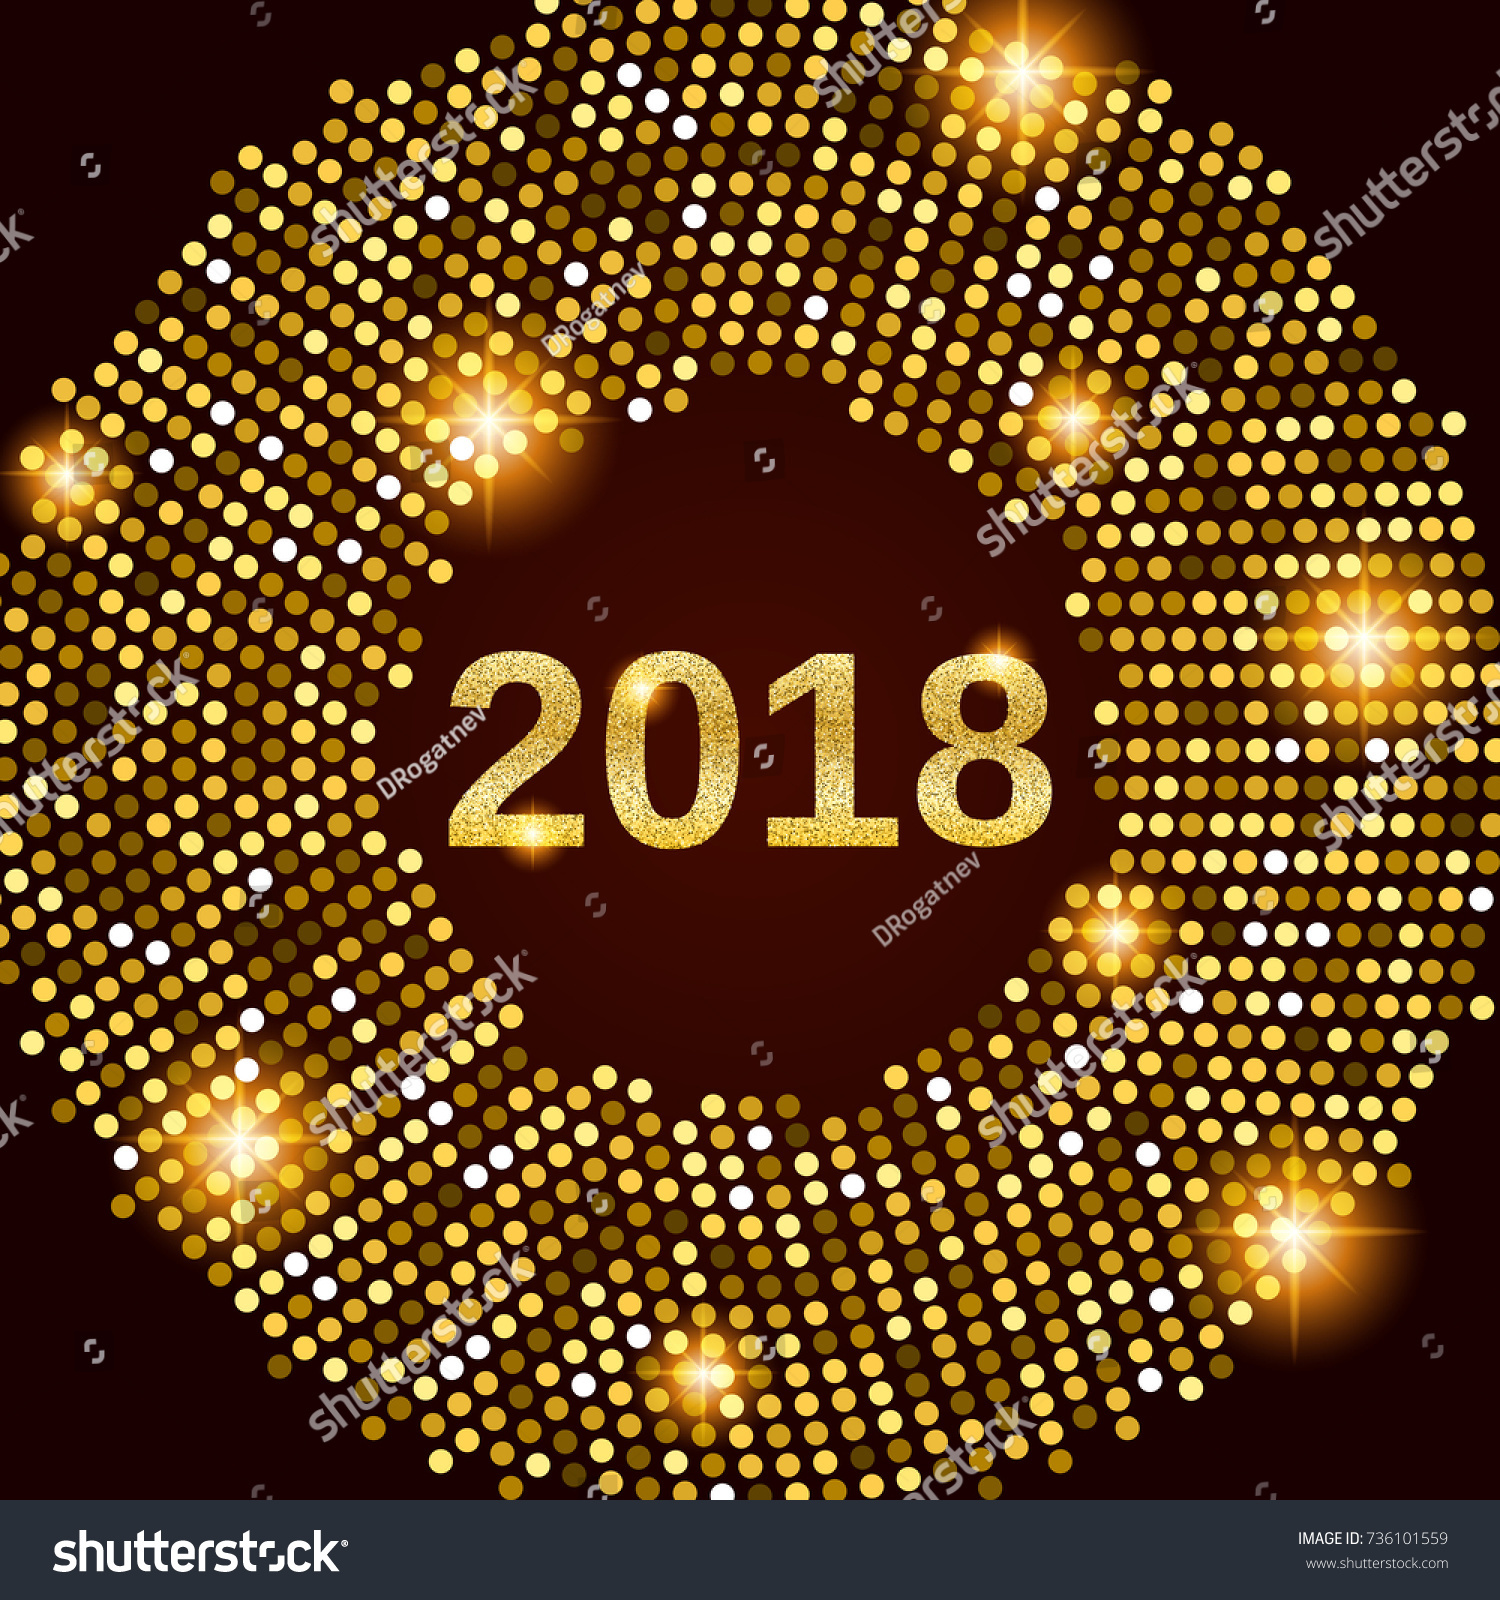 new year 2018 celebration background happy new year gold glitter type on black background with